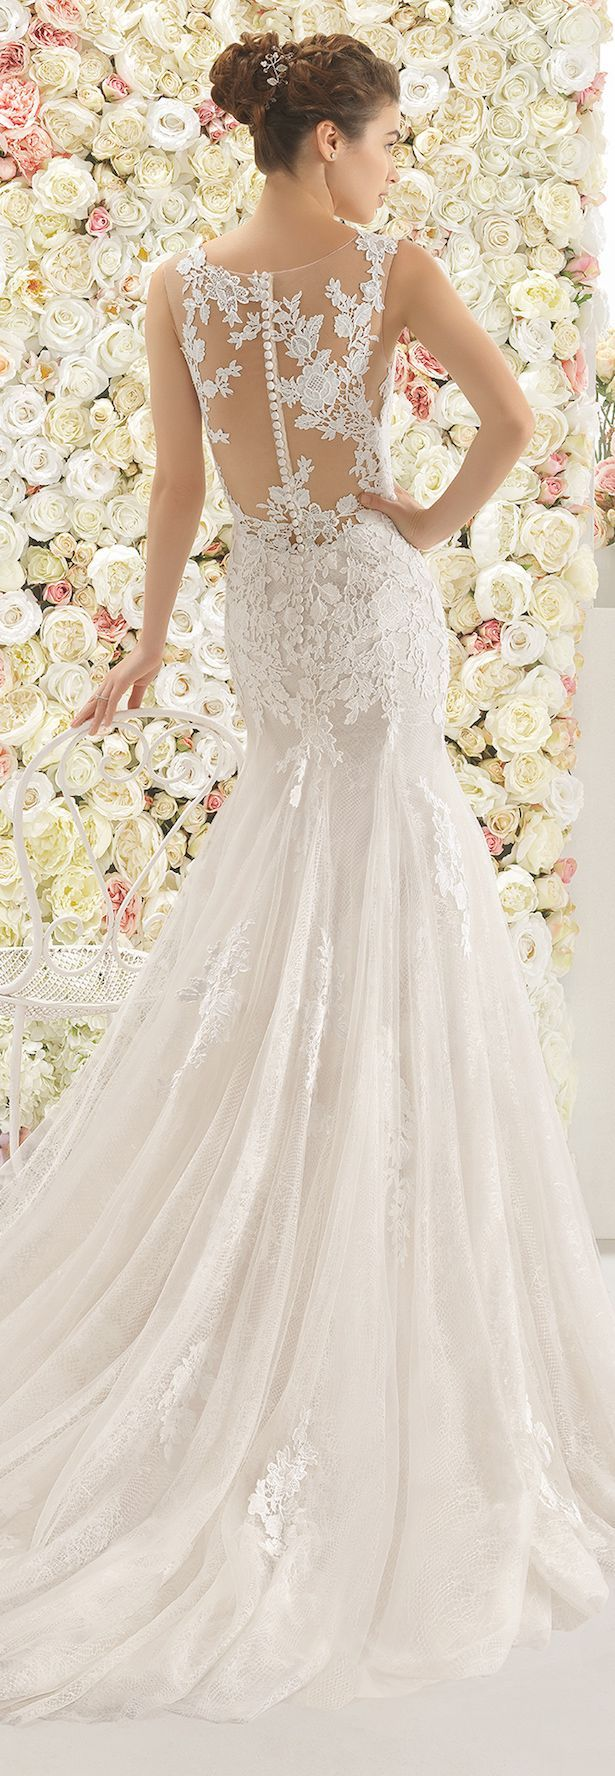 Listen up, loves. It's time to dive into the newest bridal collection from Aire Barcelona, because, well… is there a better way to spend a Wednesday morning? I'm talking breathtaking silhouettes, deta